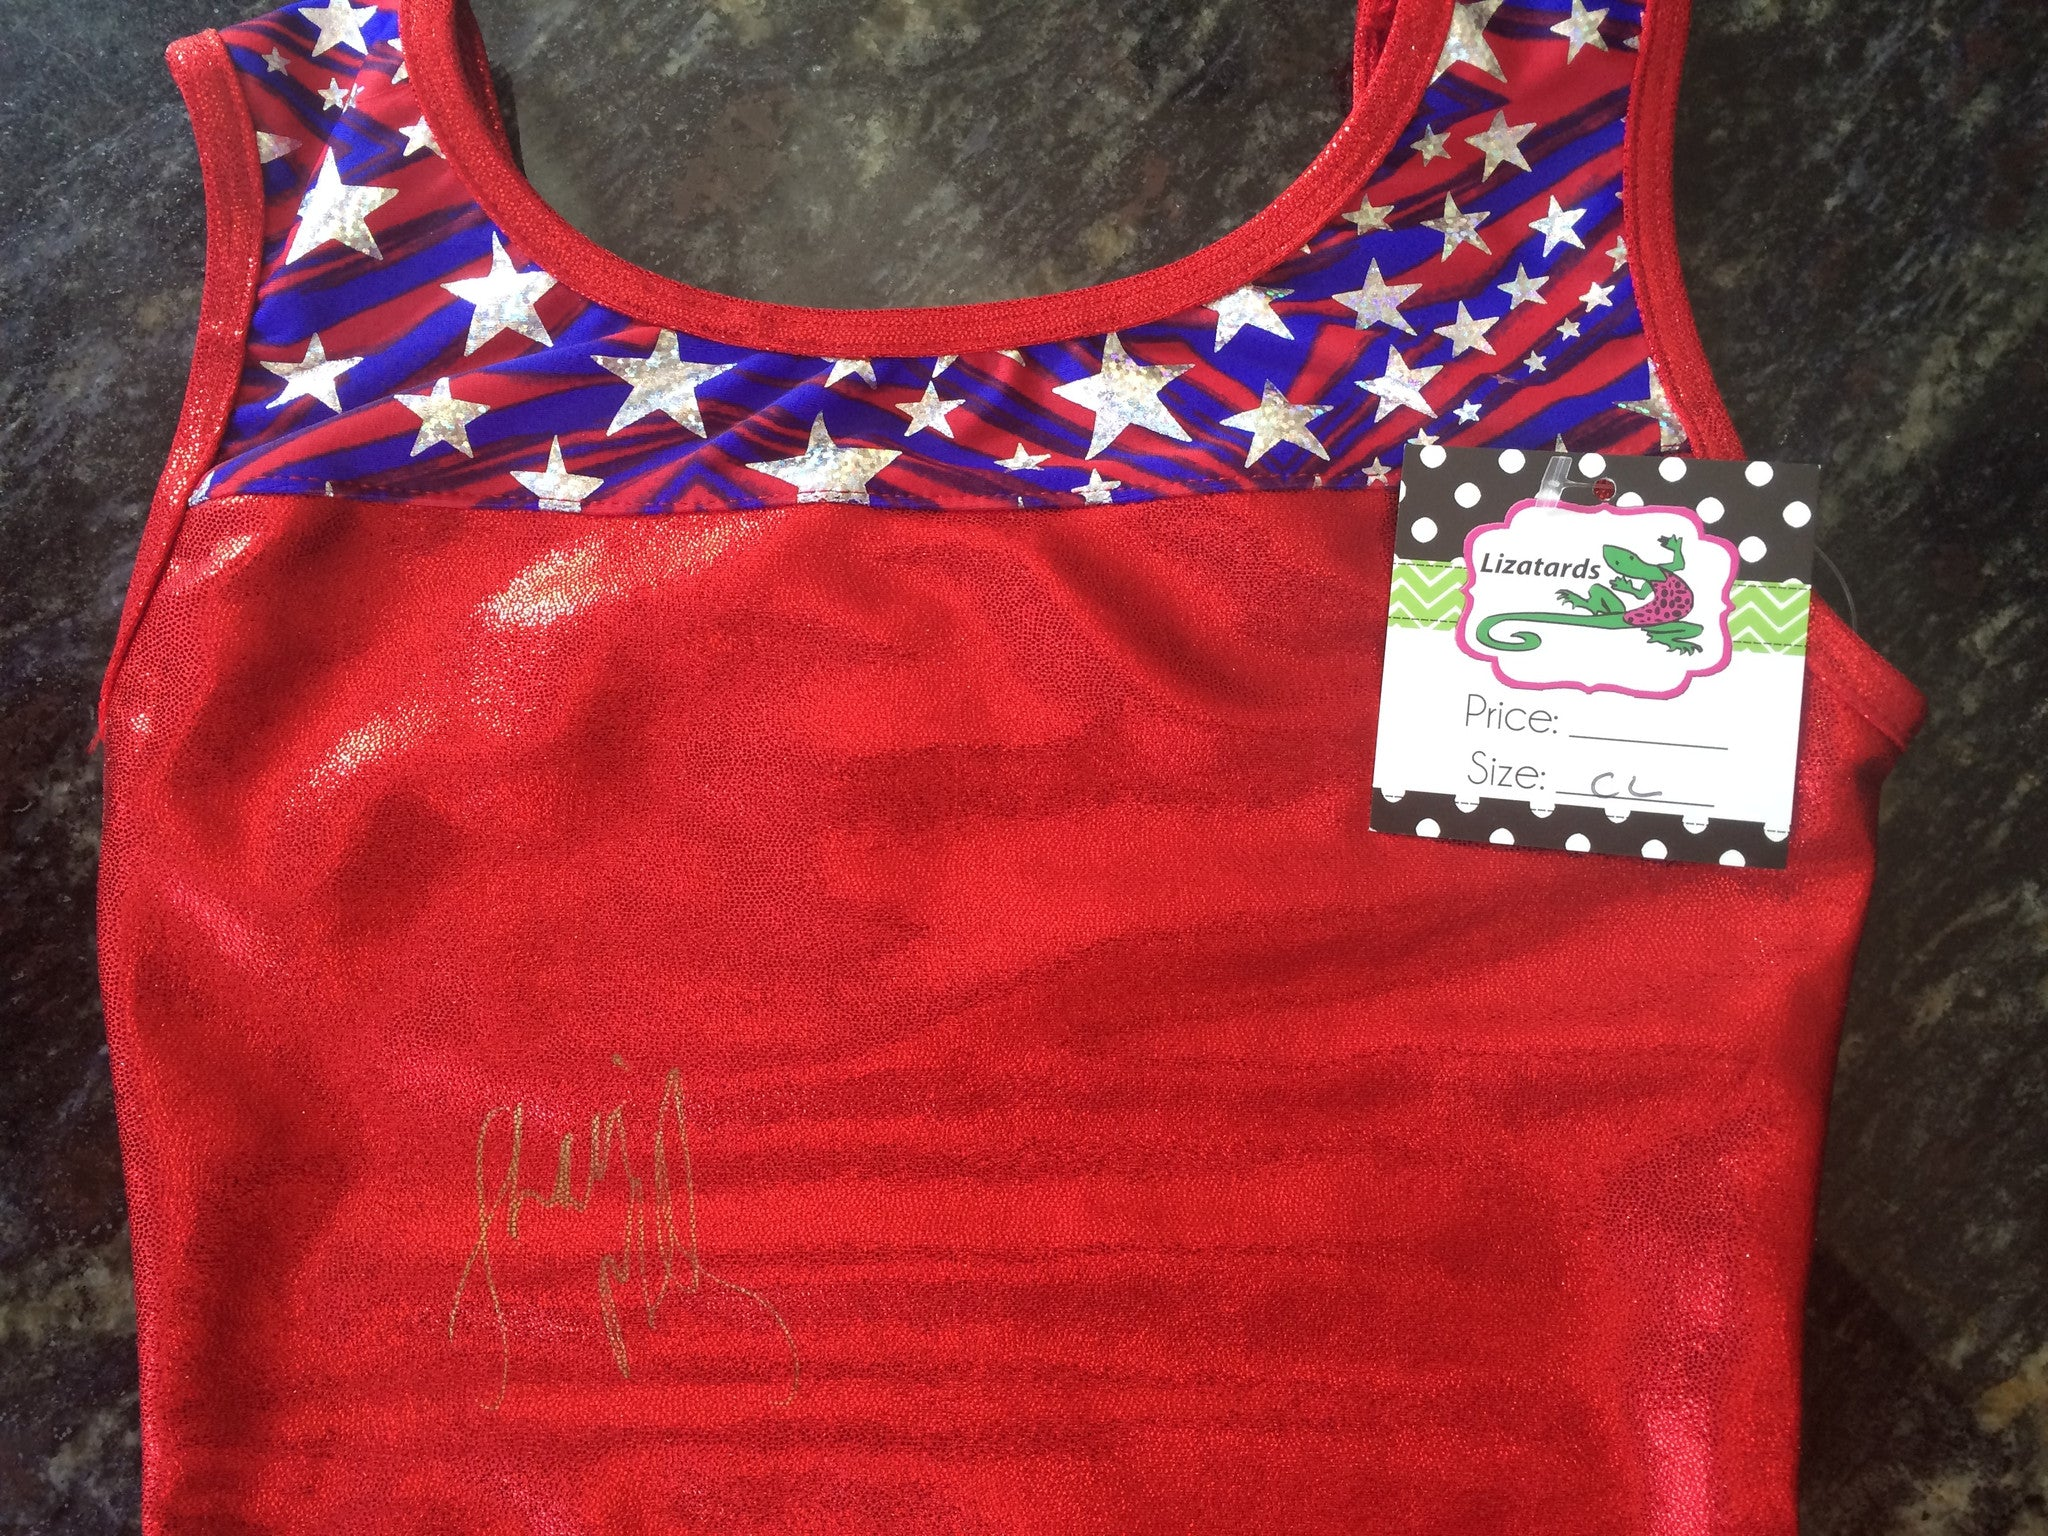 Giveaway--Leotard Autographed by Shannon Miller